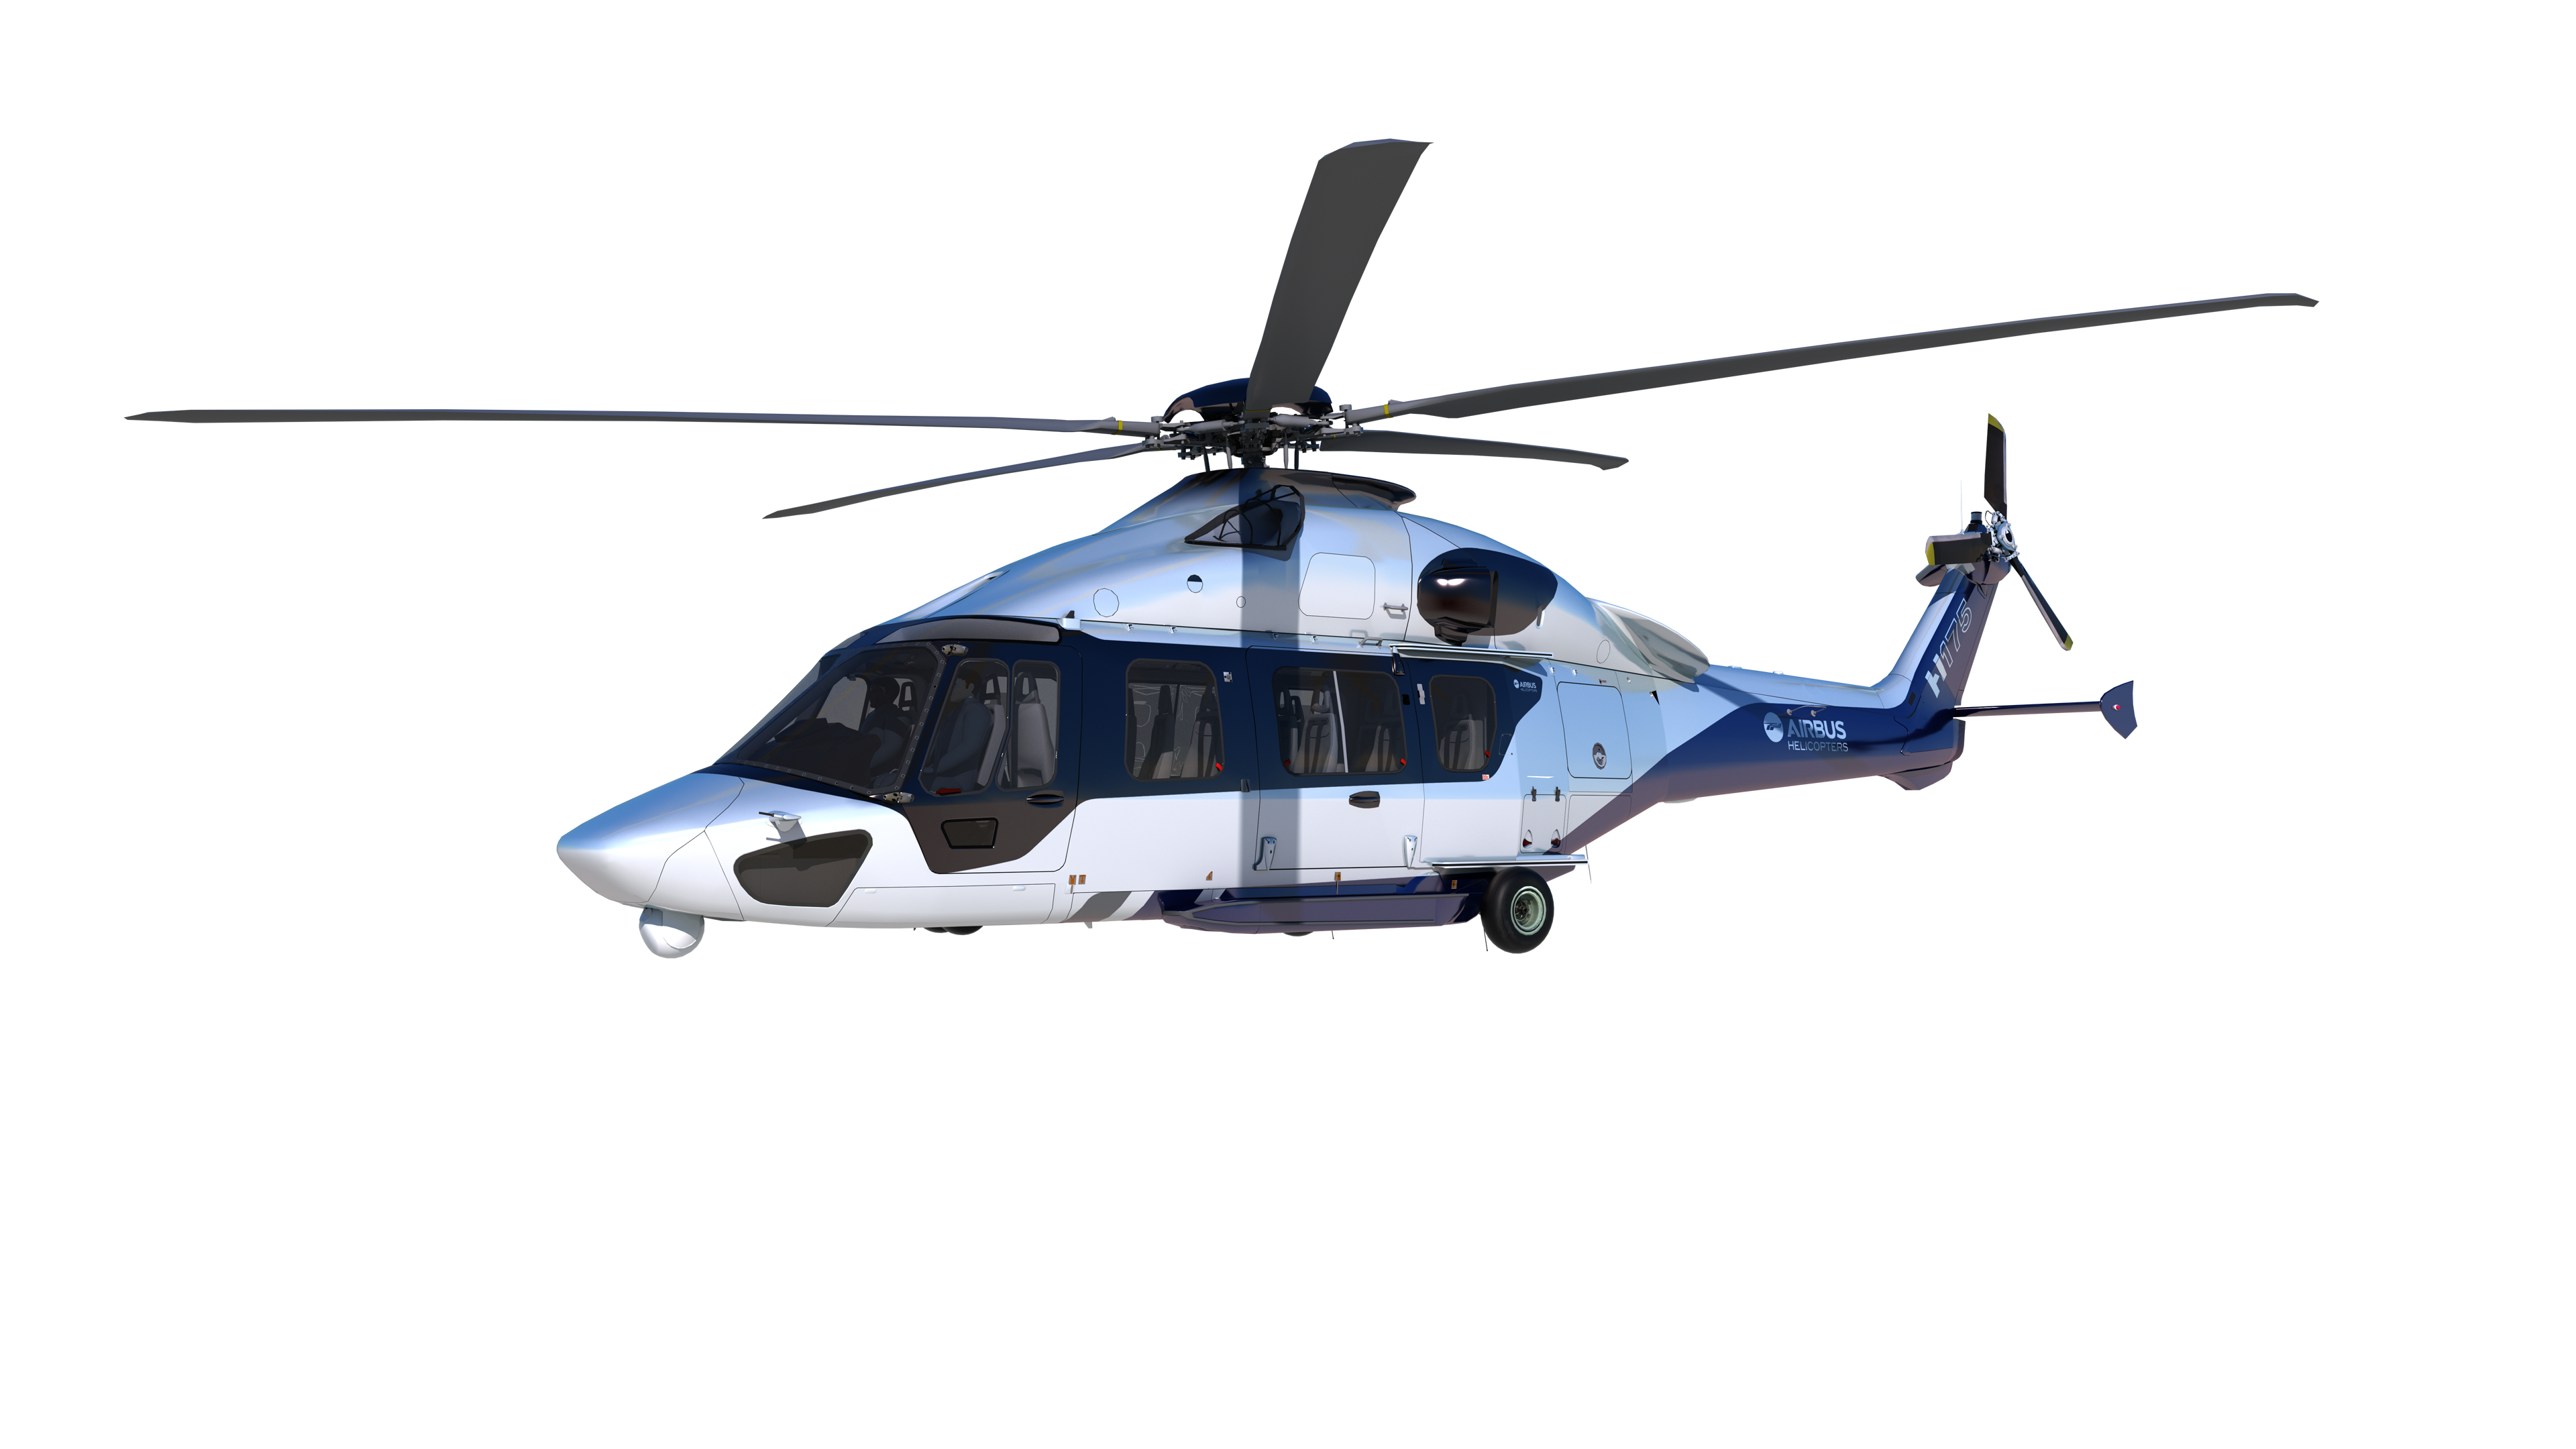 Helicopter Png image #40875